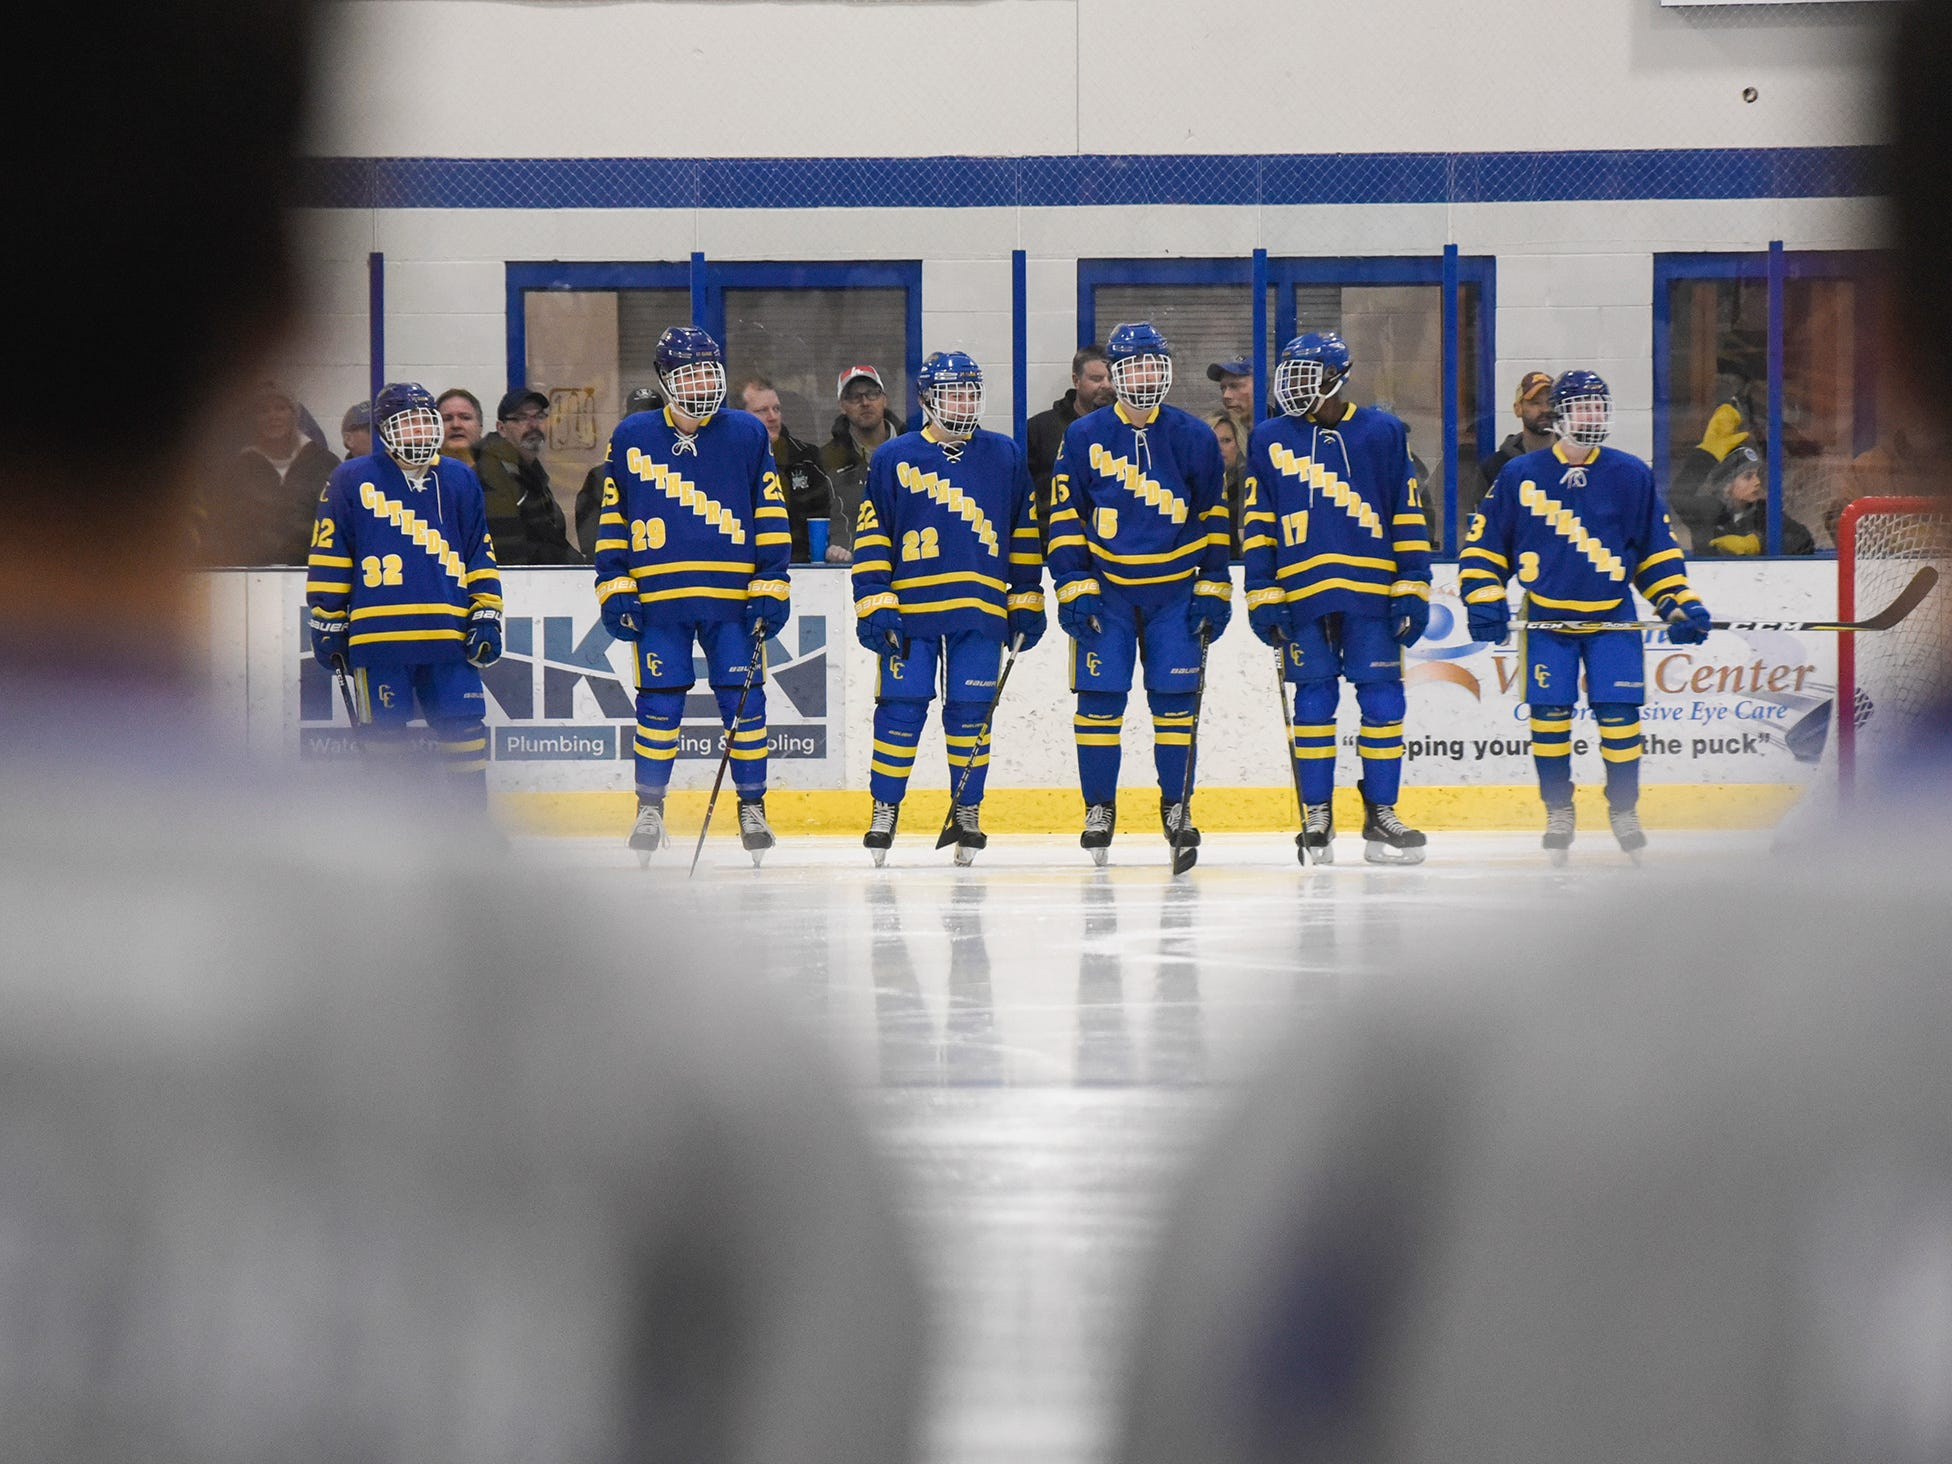 Cathedral players line up before the start of the Thursday, Jan. 10, game against Sartell at Bernicks Arena in Sartell.